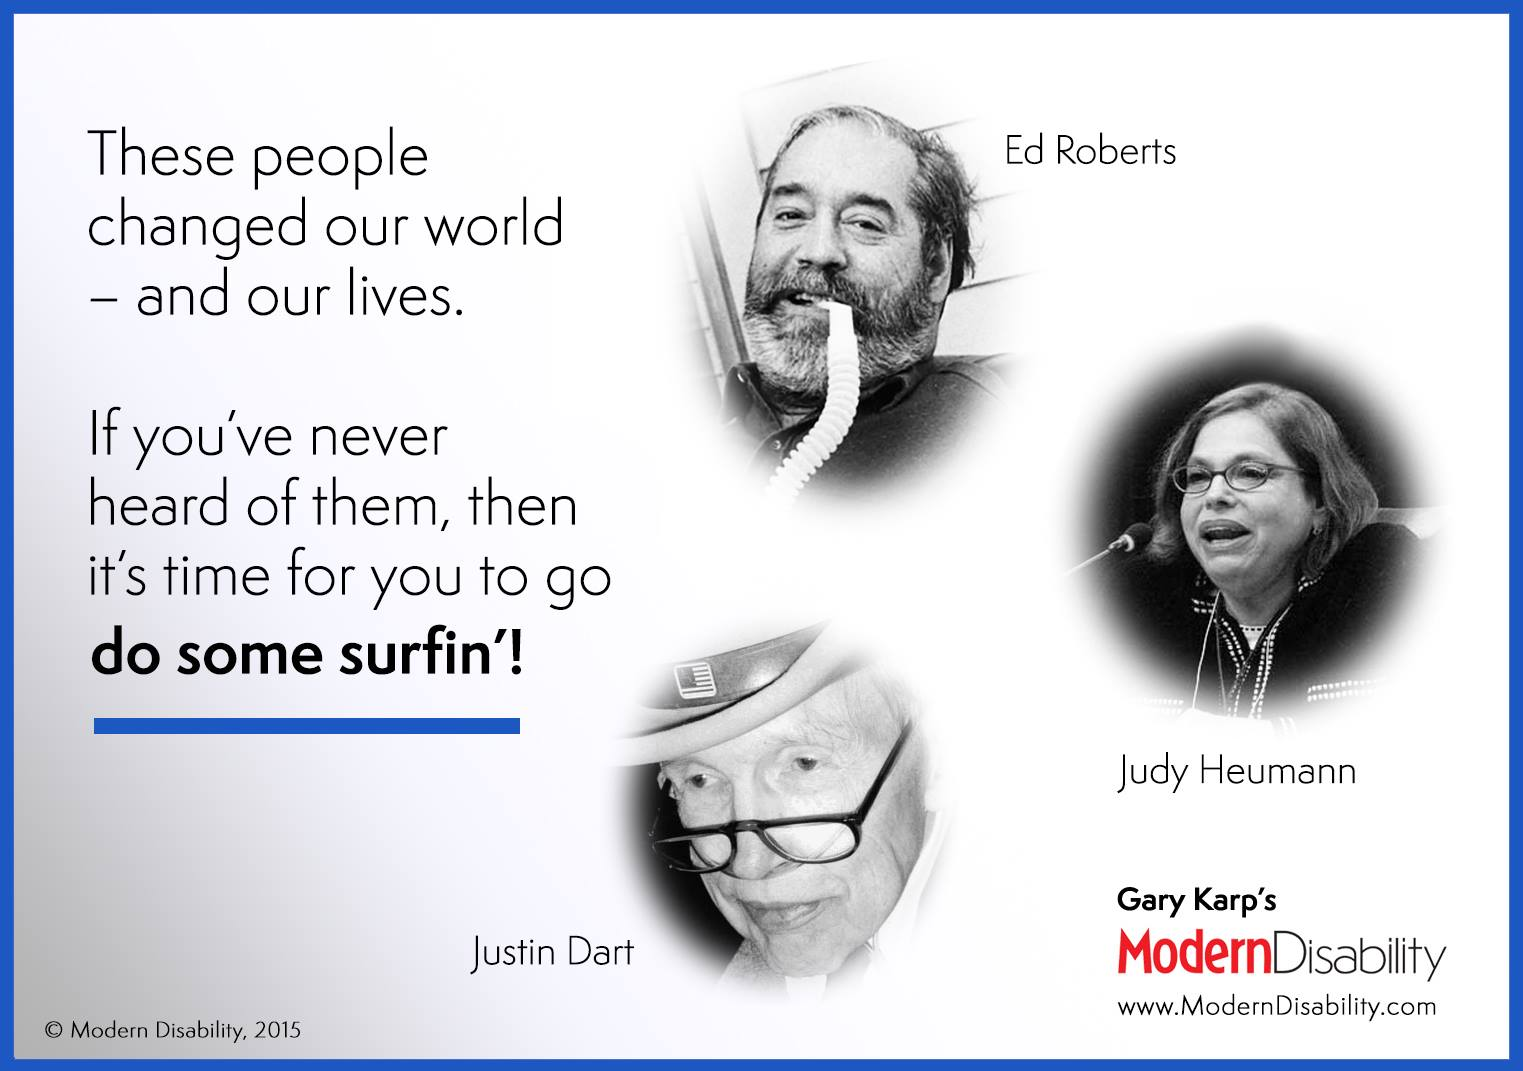 "Photos of Ed Roberts, Judy Heumann, and Justin Dart, and the text, ""These people changed our world — and our lives. If you've never heard of them, then it's time for you to go do some surfin'!"""